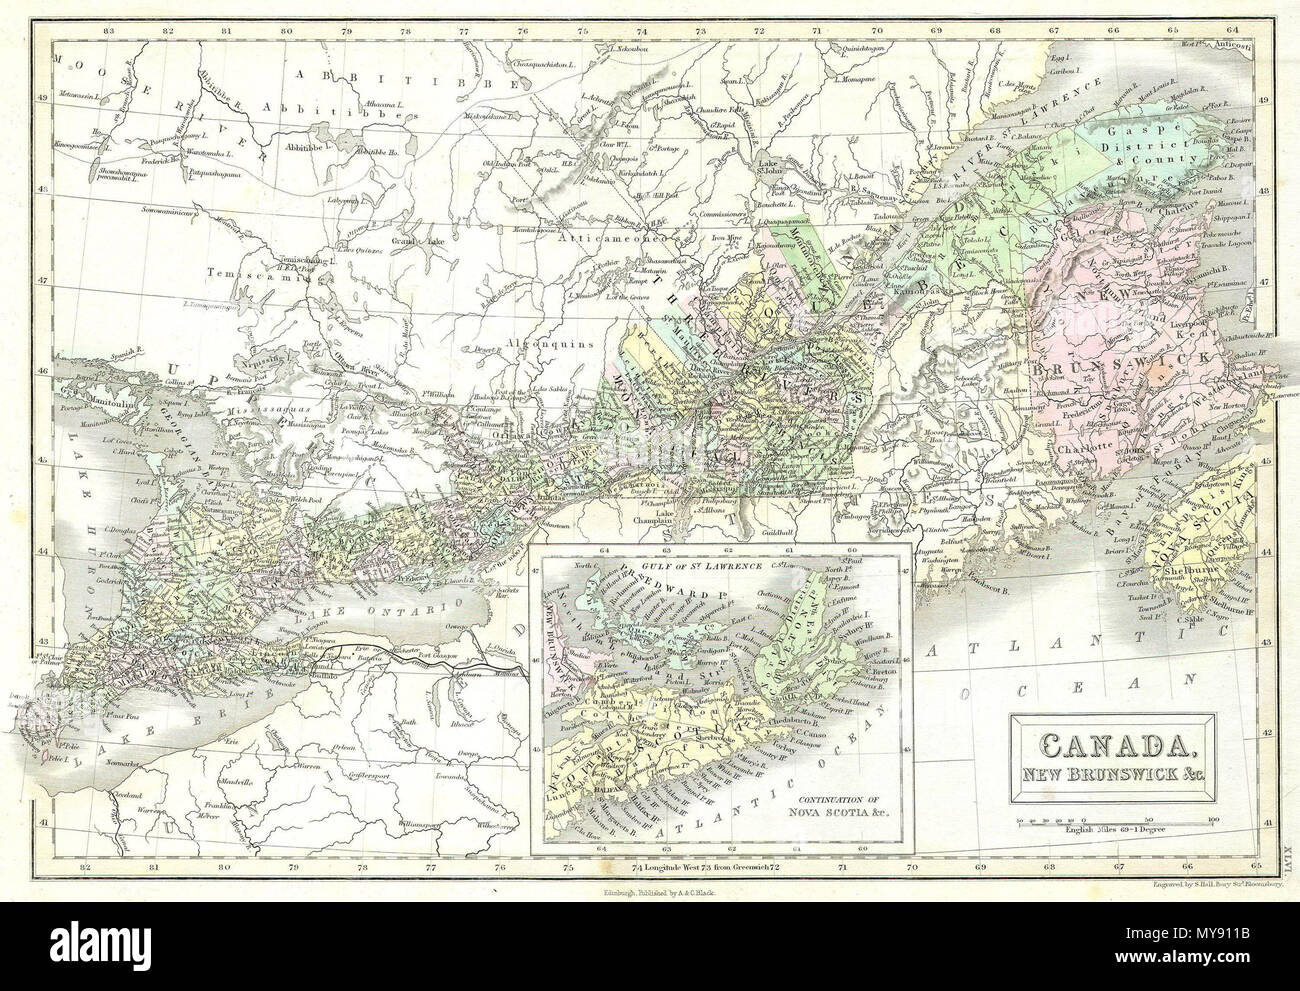 Map Of Eastern Canada Colors Canada, New Brunswick & C. English: This is a fascinating 1851